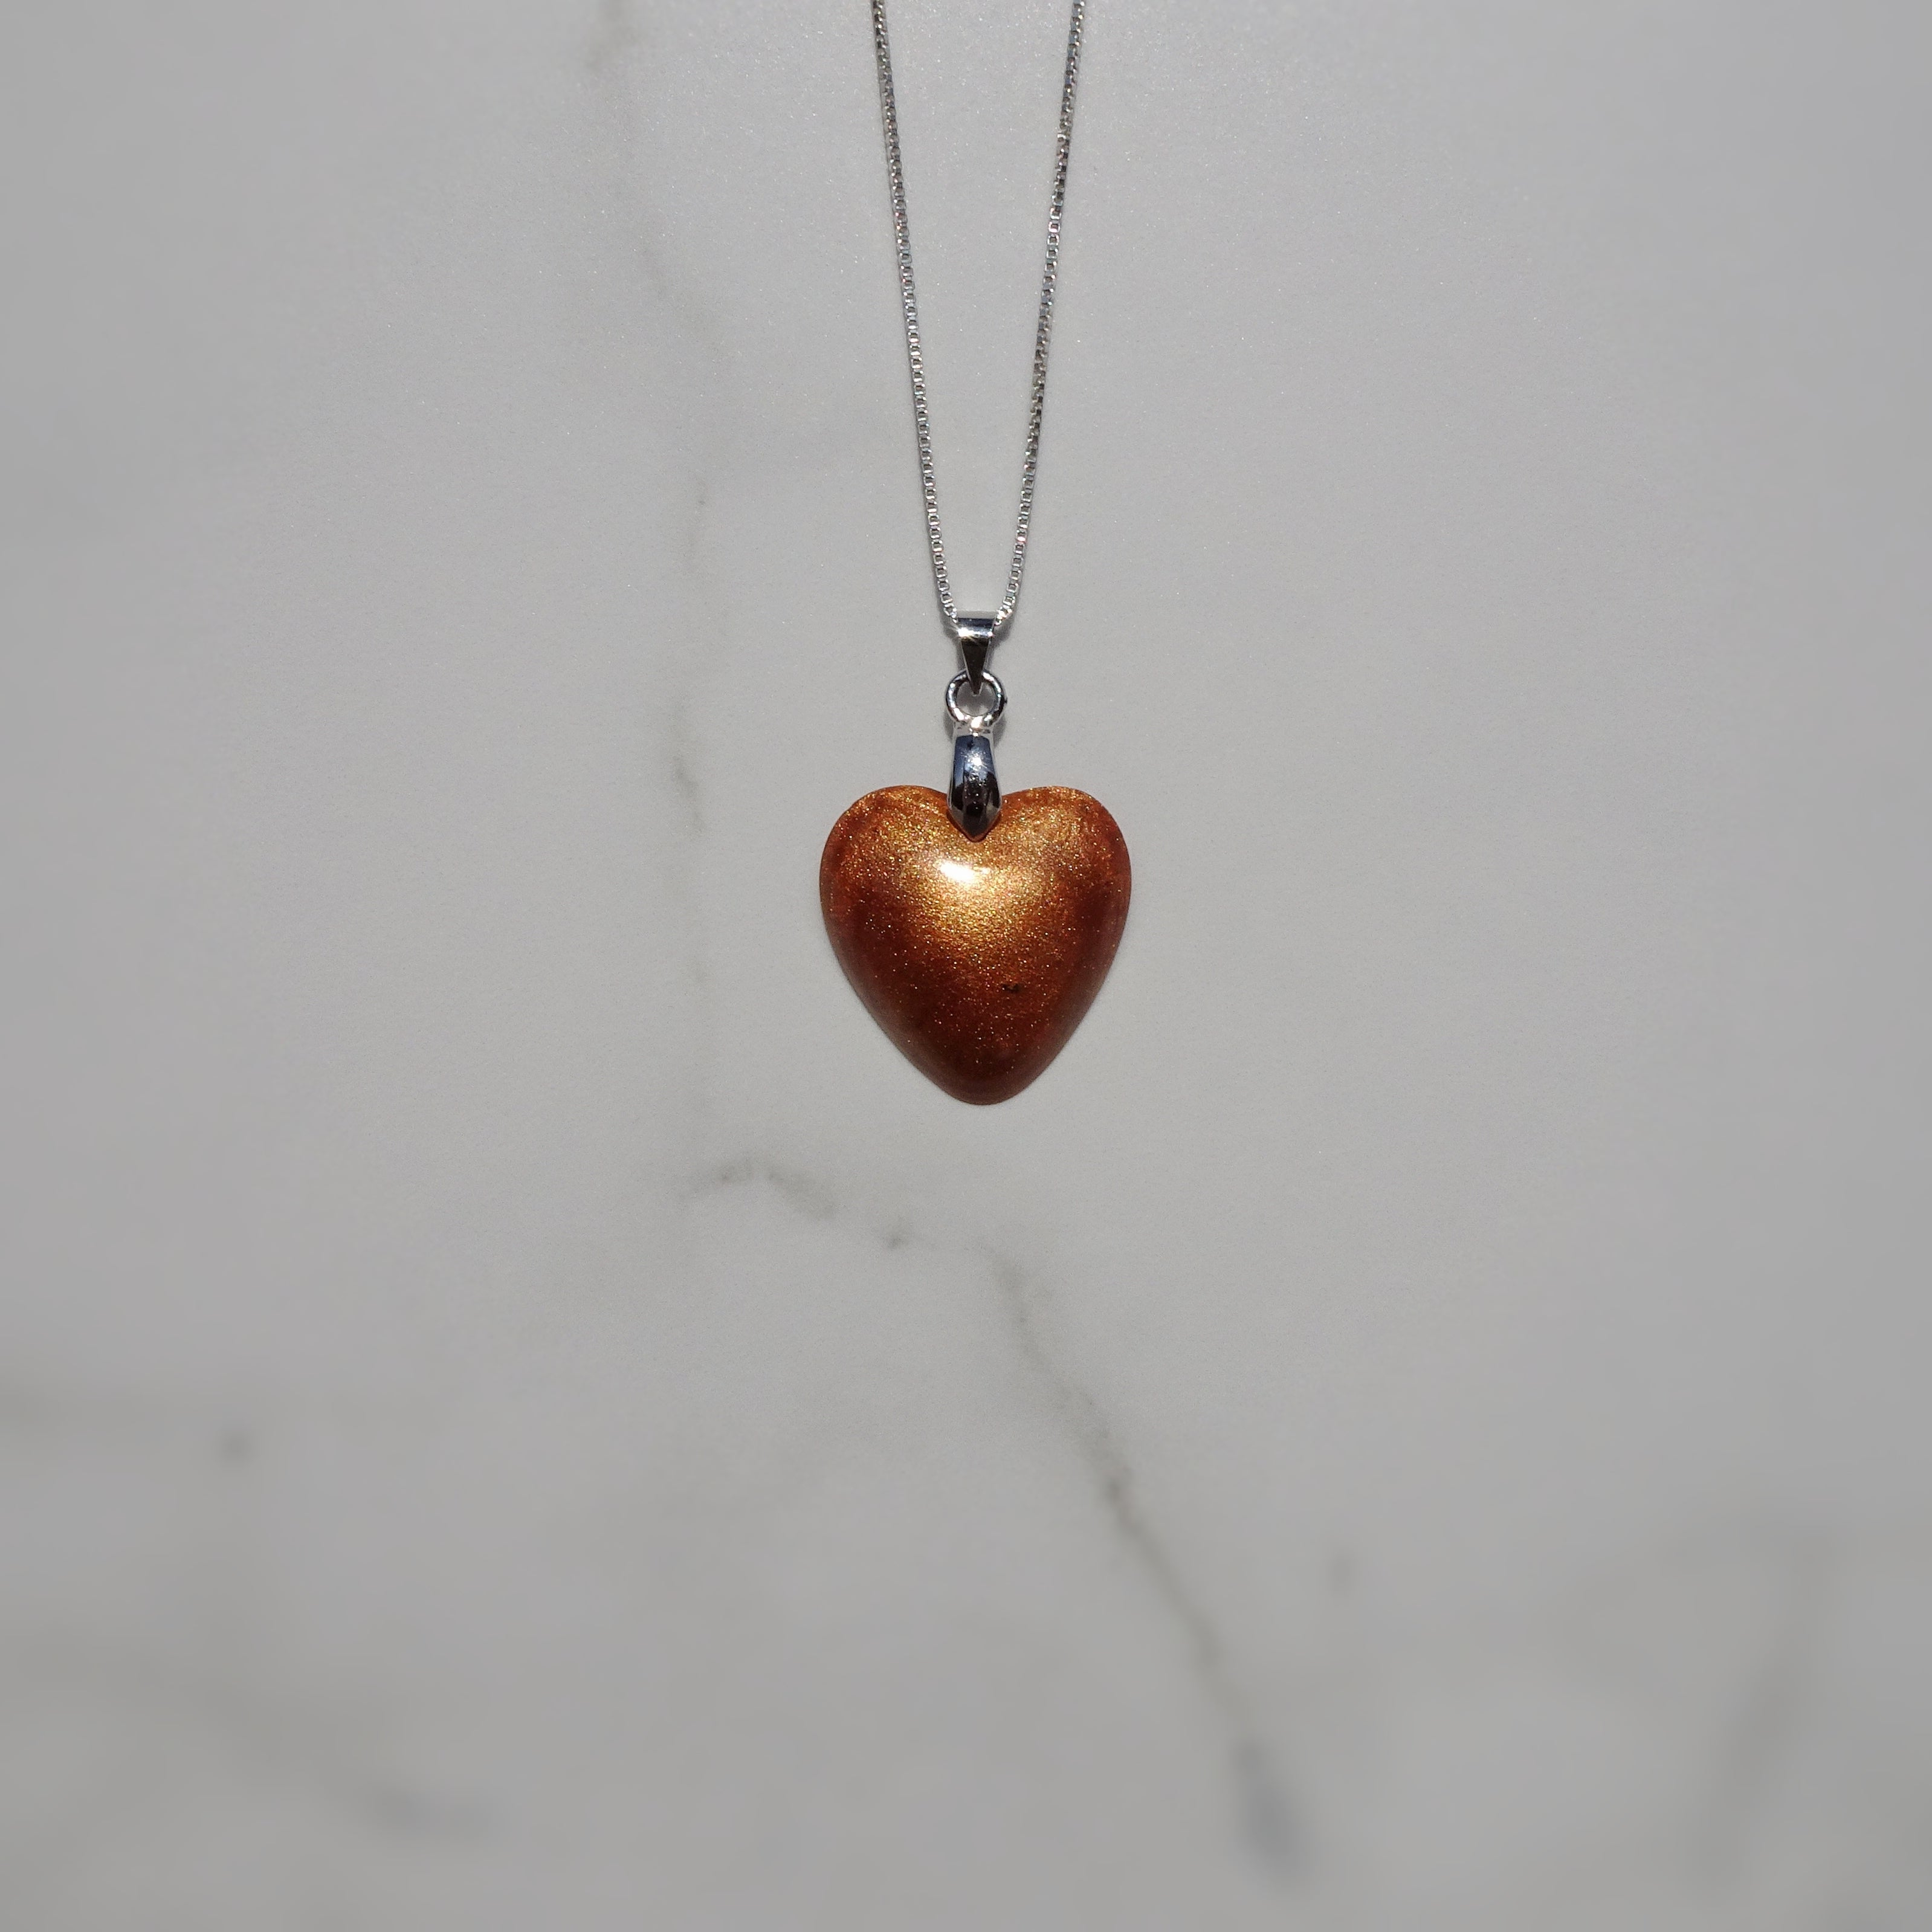 Copper Pearl Acrylic Resin Heart Pendant - One of a Kind - Art and Soule